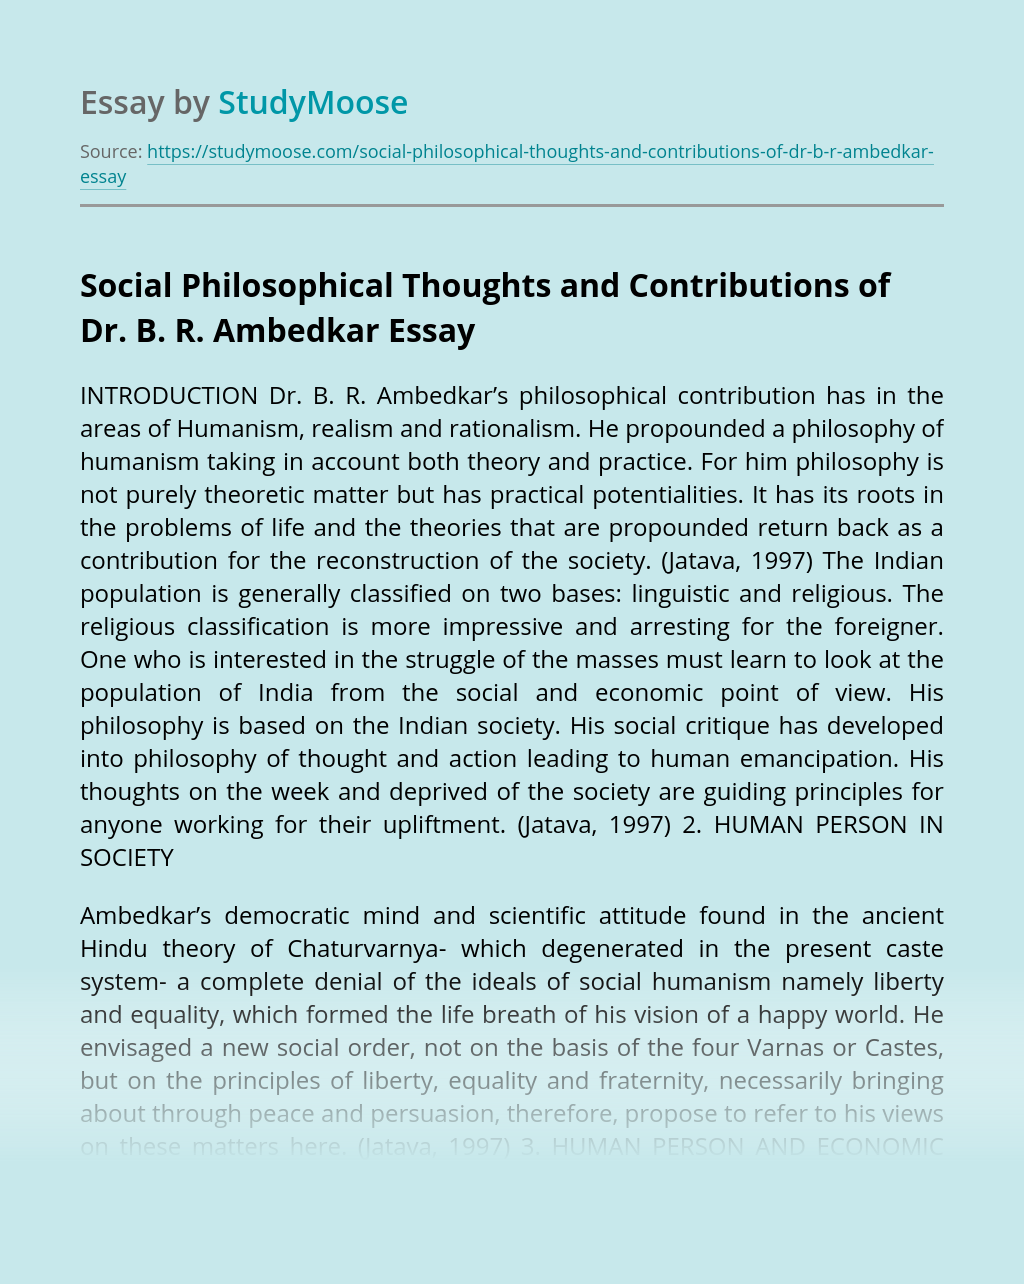 Social Philosophical Thoughts and Contributions of Dr. B. R. Ambedkar